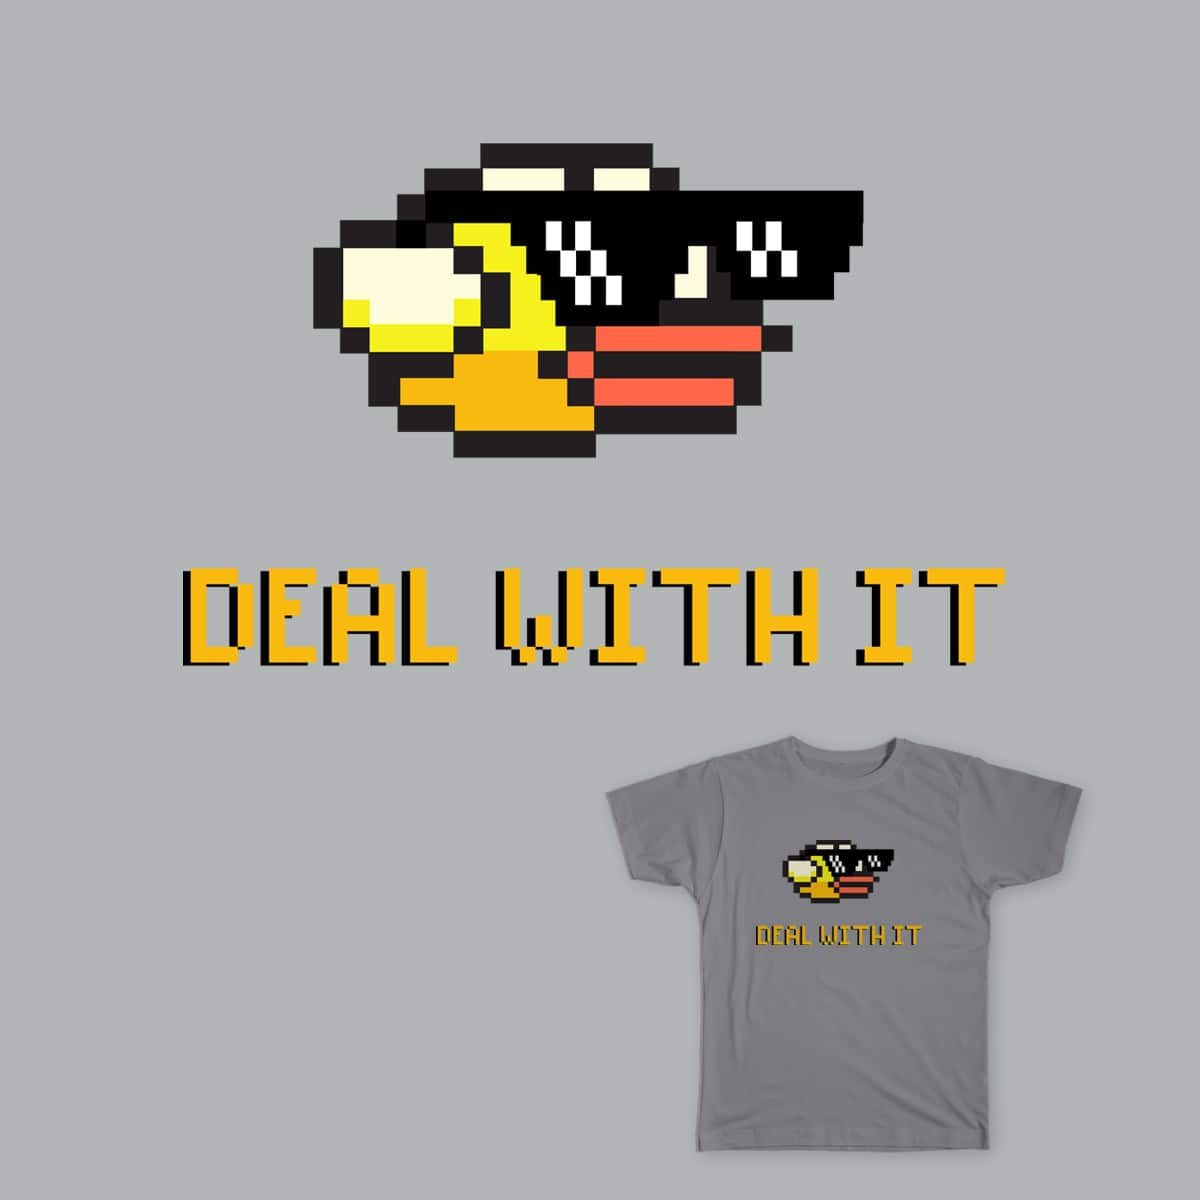 Deal with Flappy Bird by Siam89 on Threadless